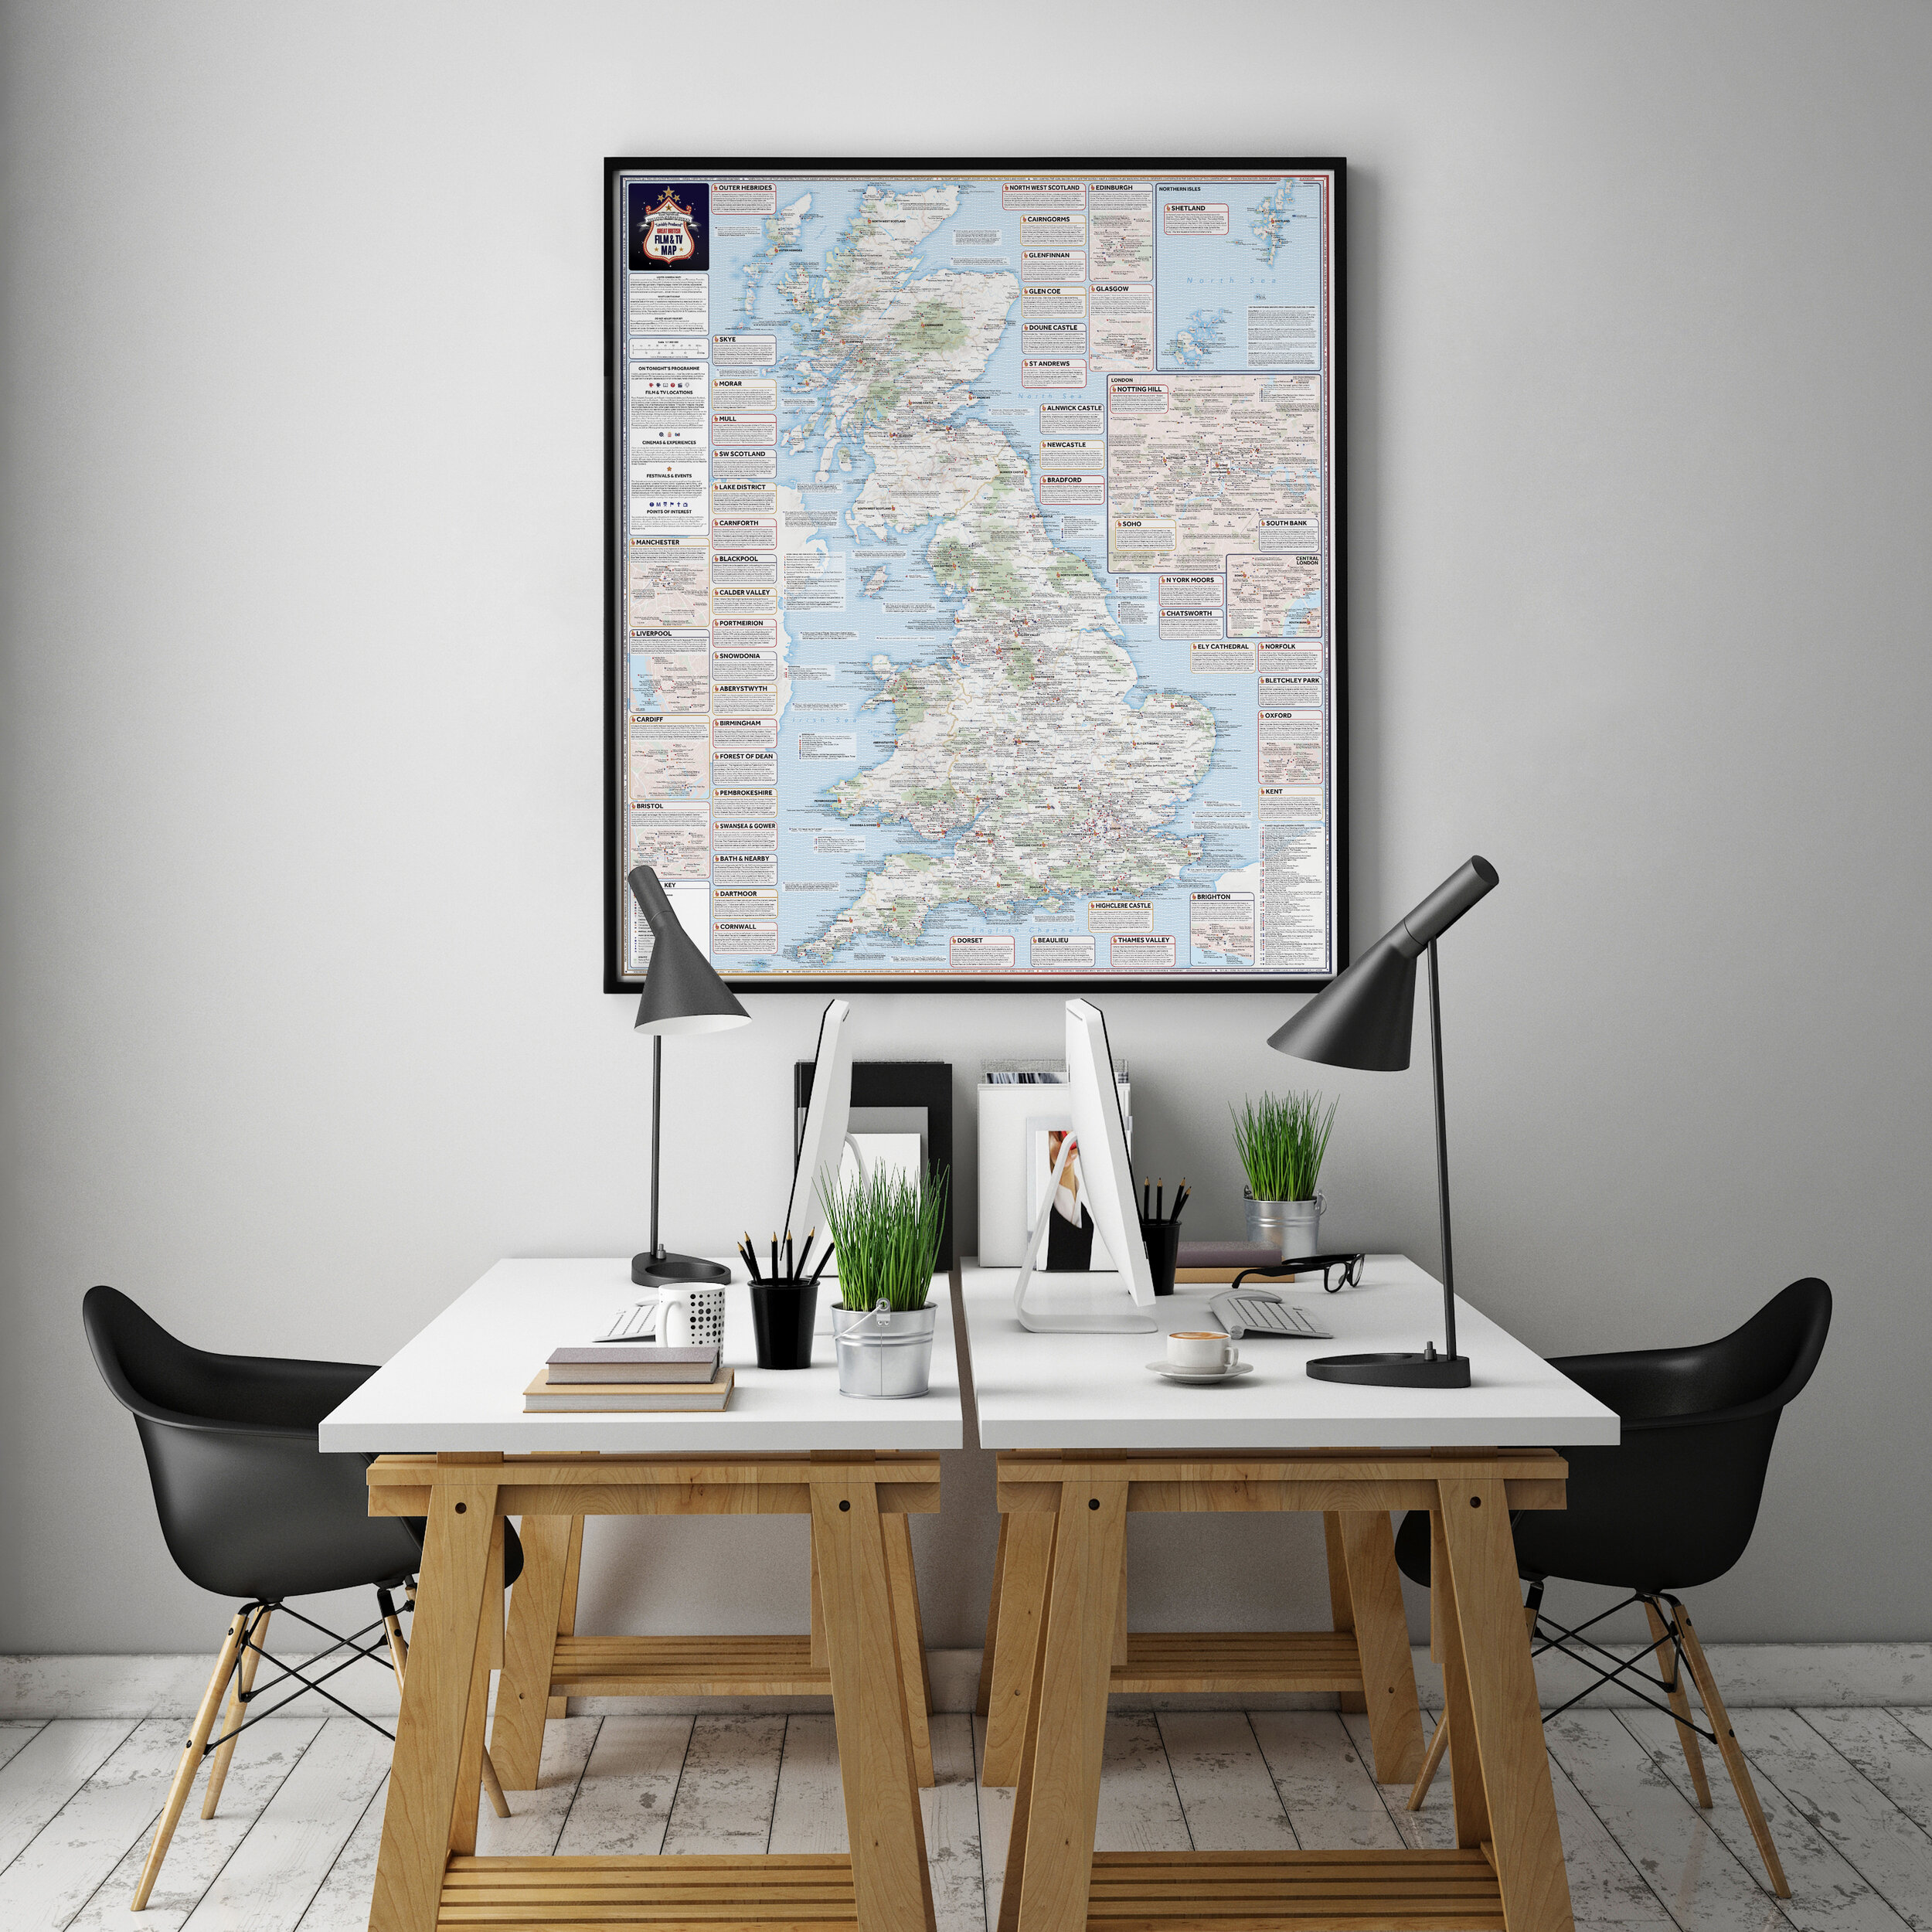 ST&G's Lavishly Produced Great British Film and TV Map - Office_Full.jpg